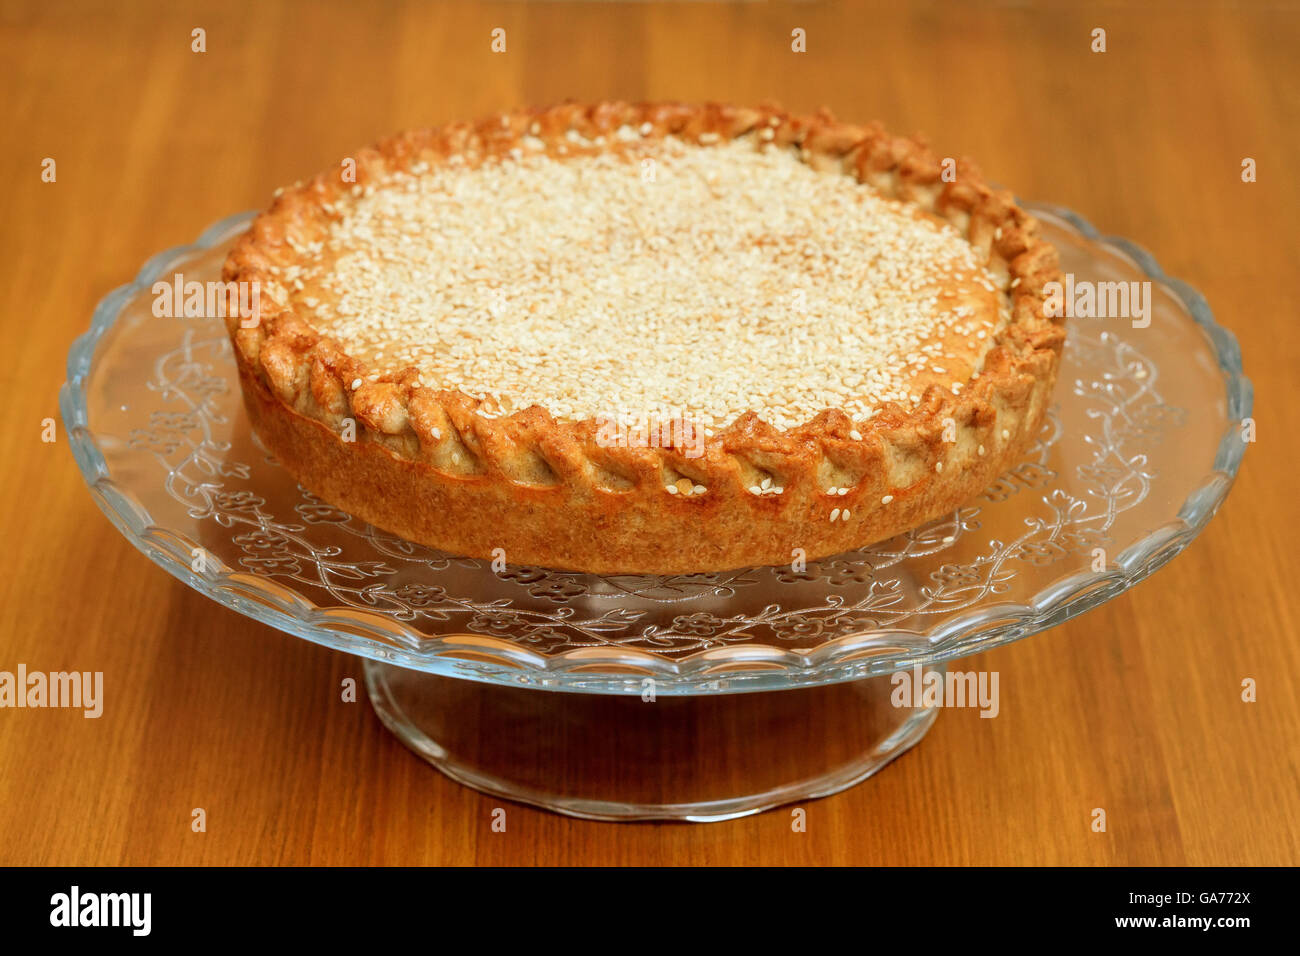 Cooked meat pie with sesame on a crystal bowl - Stock Image